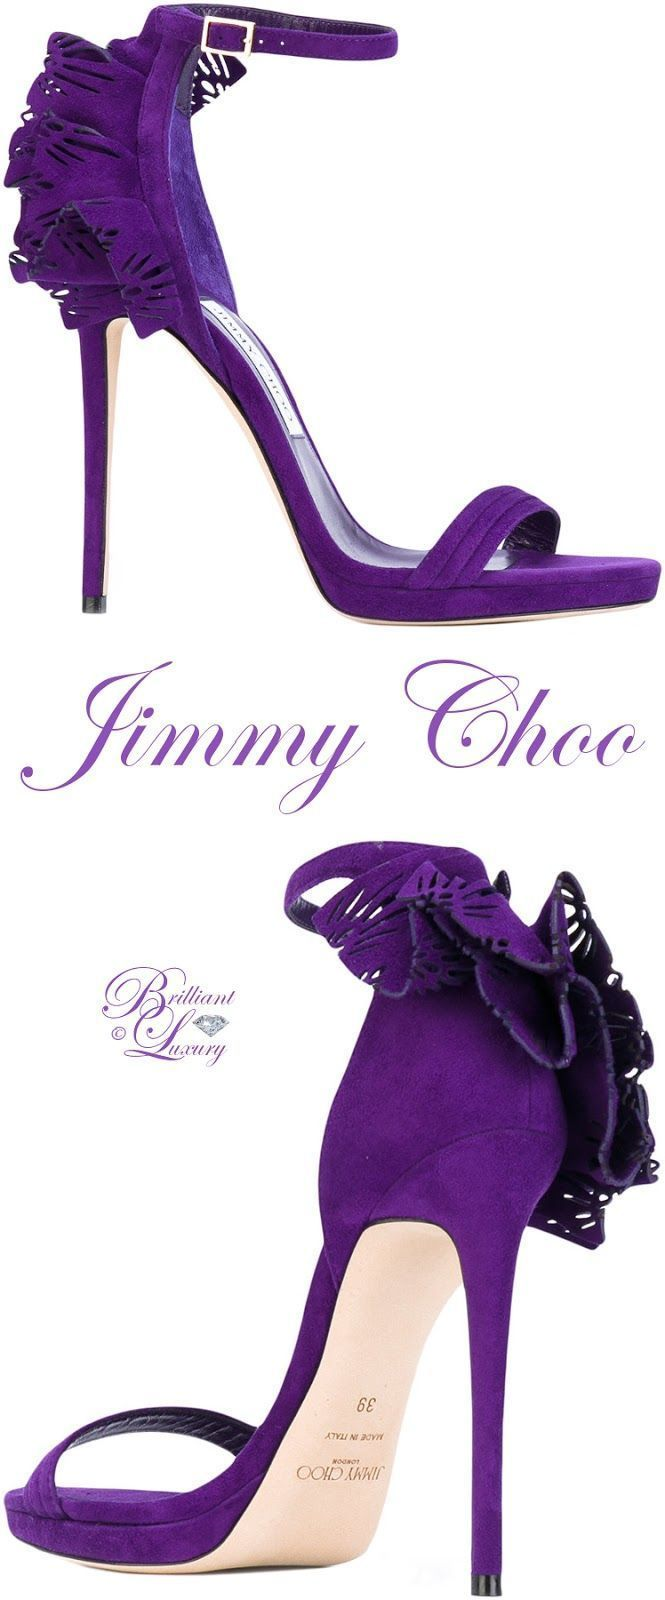 Brilliant Luxury by Emmy DE ♦ Jimmy Choo Kelly Sandals. Not really a fan of purple, but the style ❣️ #stilettoheelsjimmychoo #jimmychoobags #jimmychooheelspurple